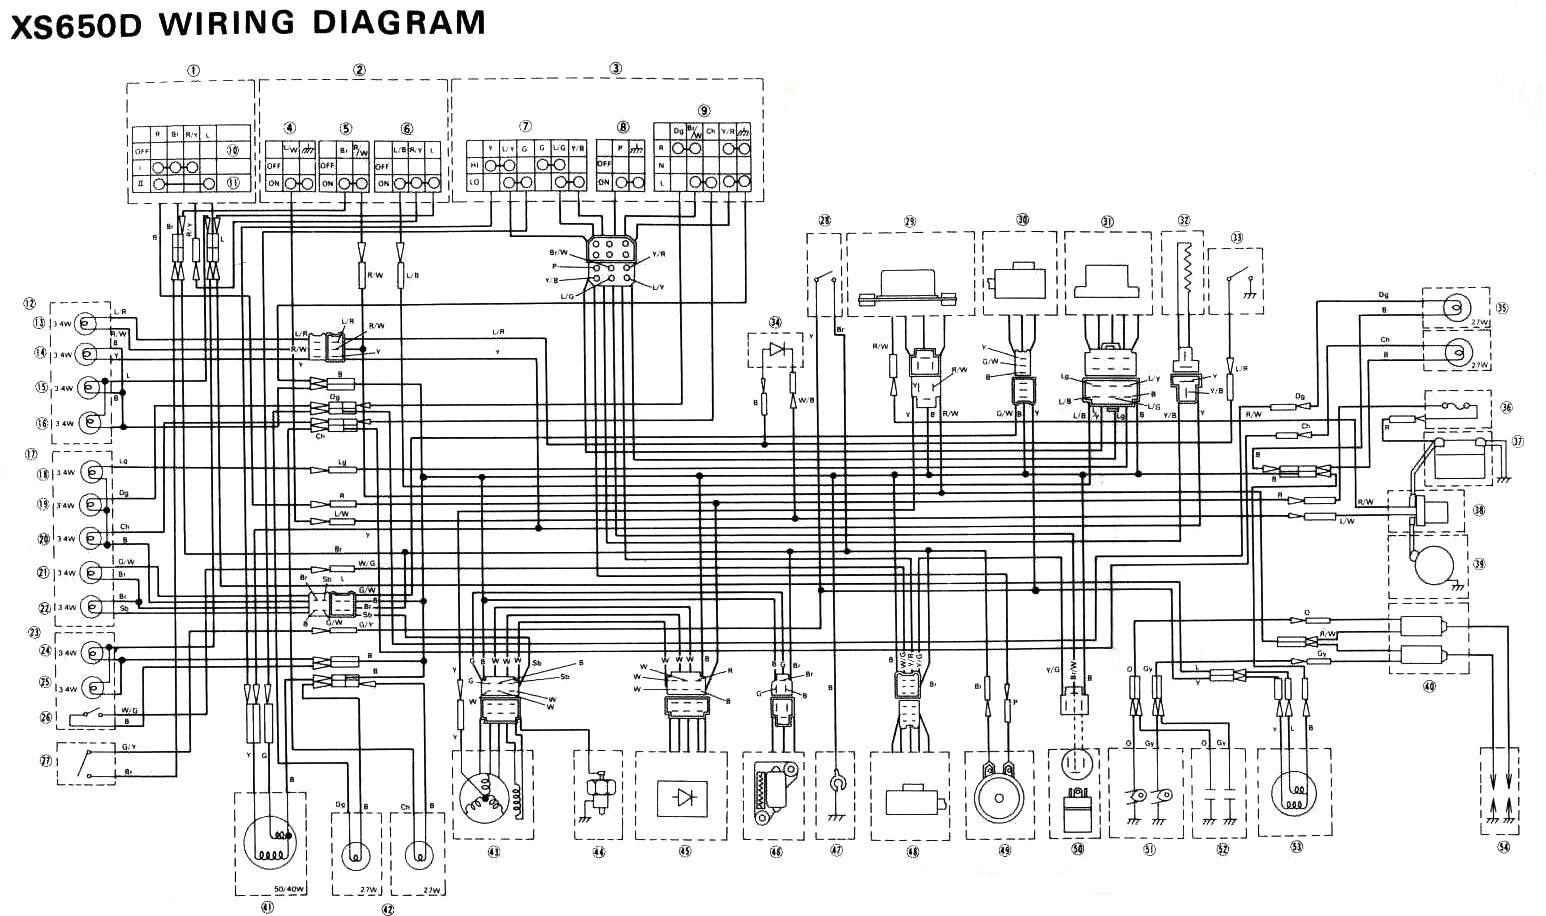 77XS650 wiring diagrams 1978 yamaha xs650 wiring diagram at virtualis.co